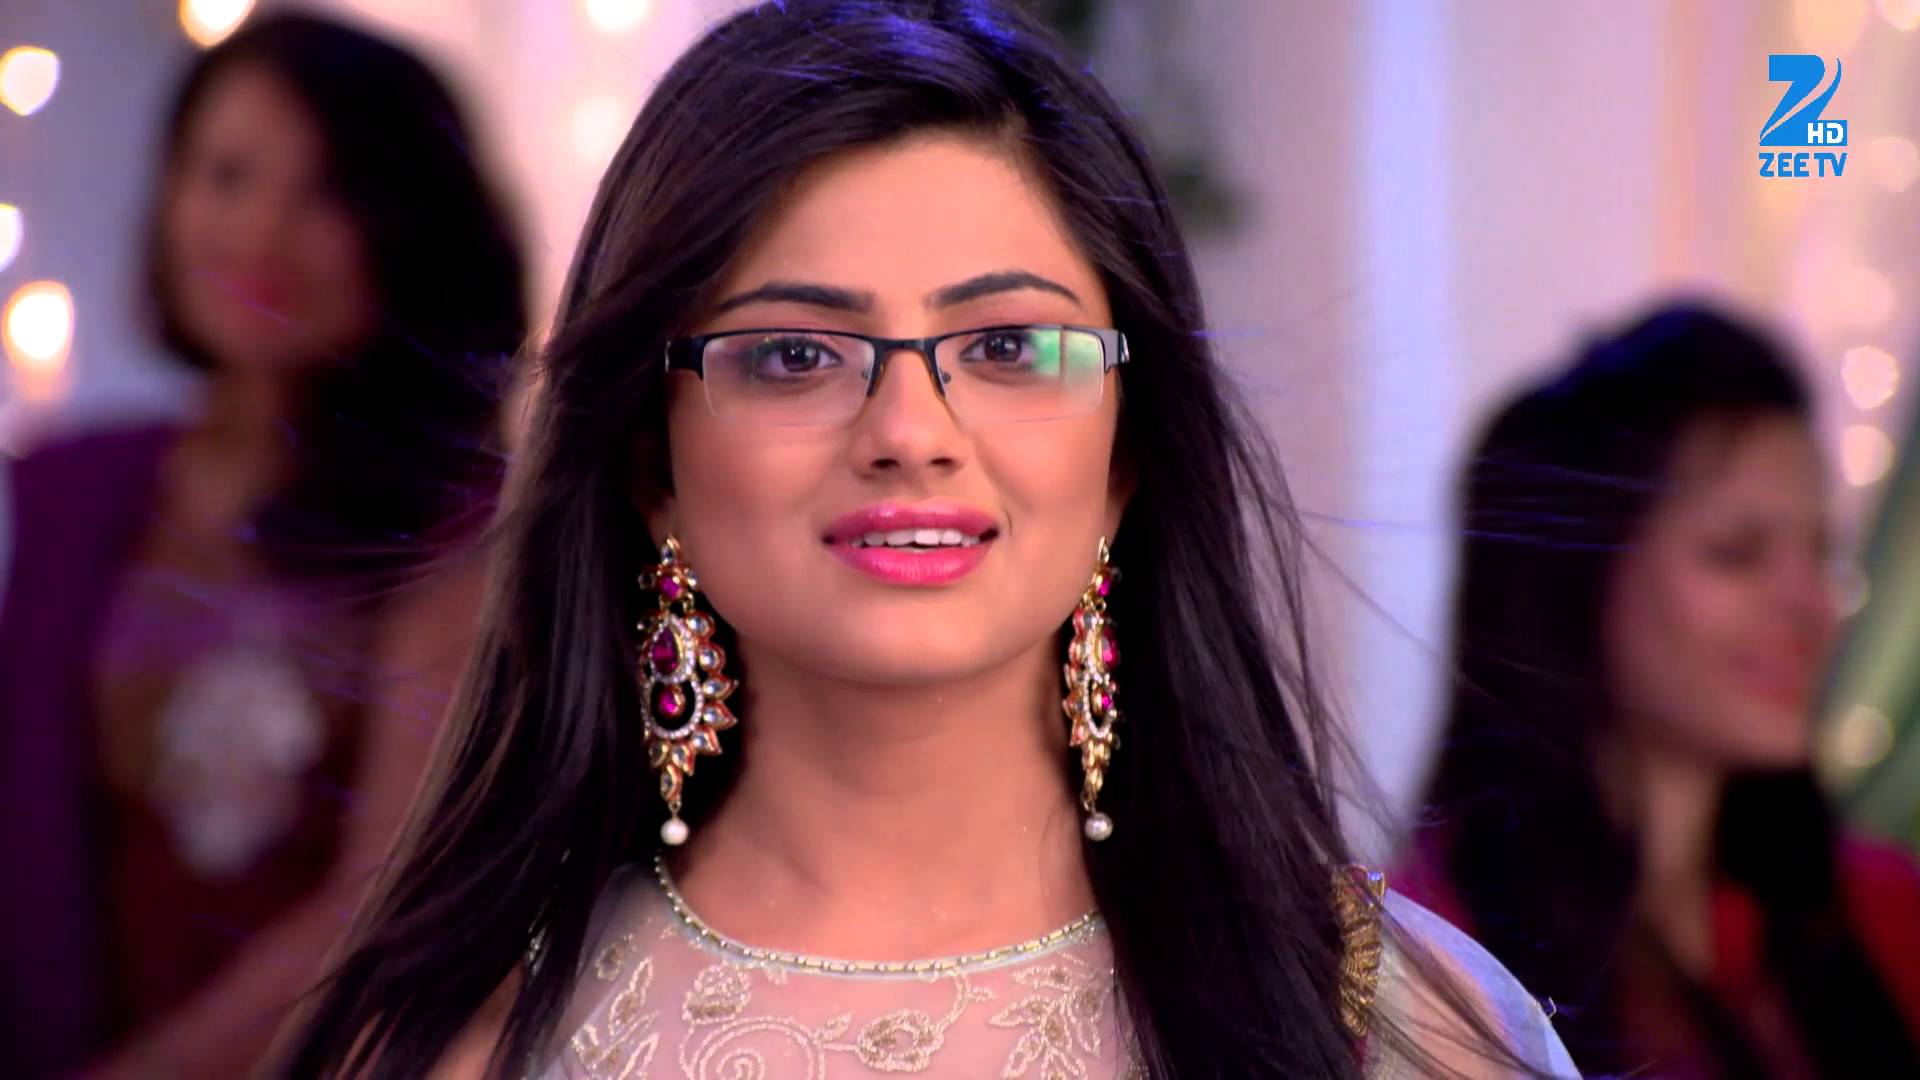 Tashan-E-Ishq Episode Written Updates